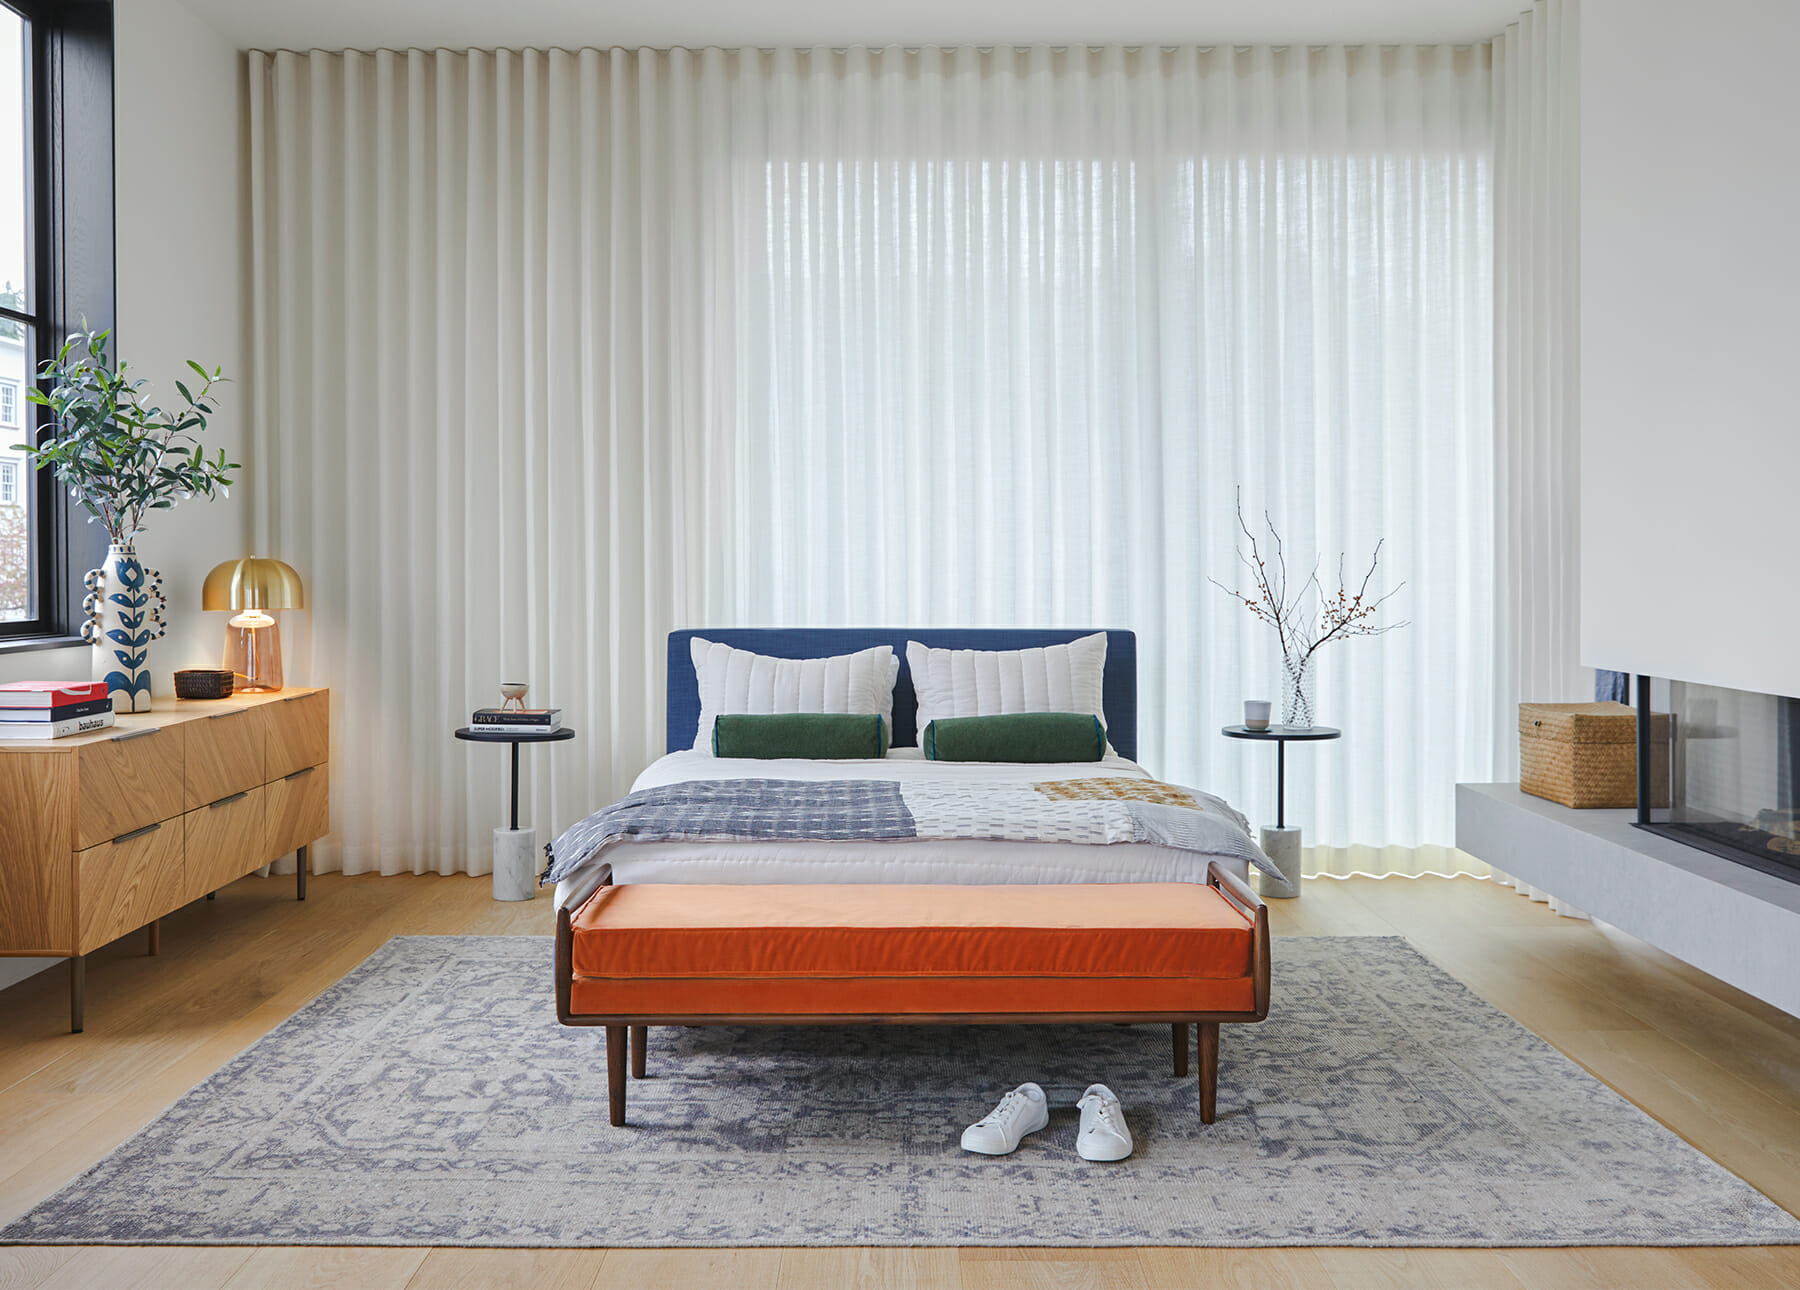 A bedroom is shown with a bright orange bench, neutral rug, and blue bedding.